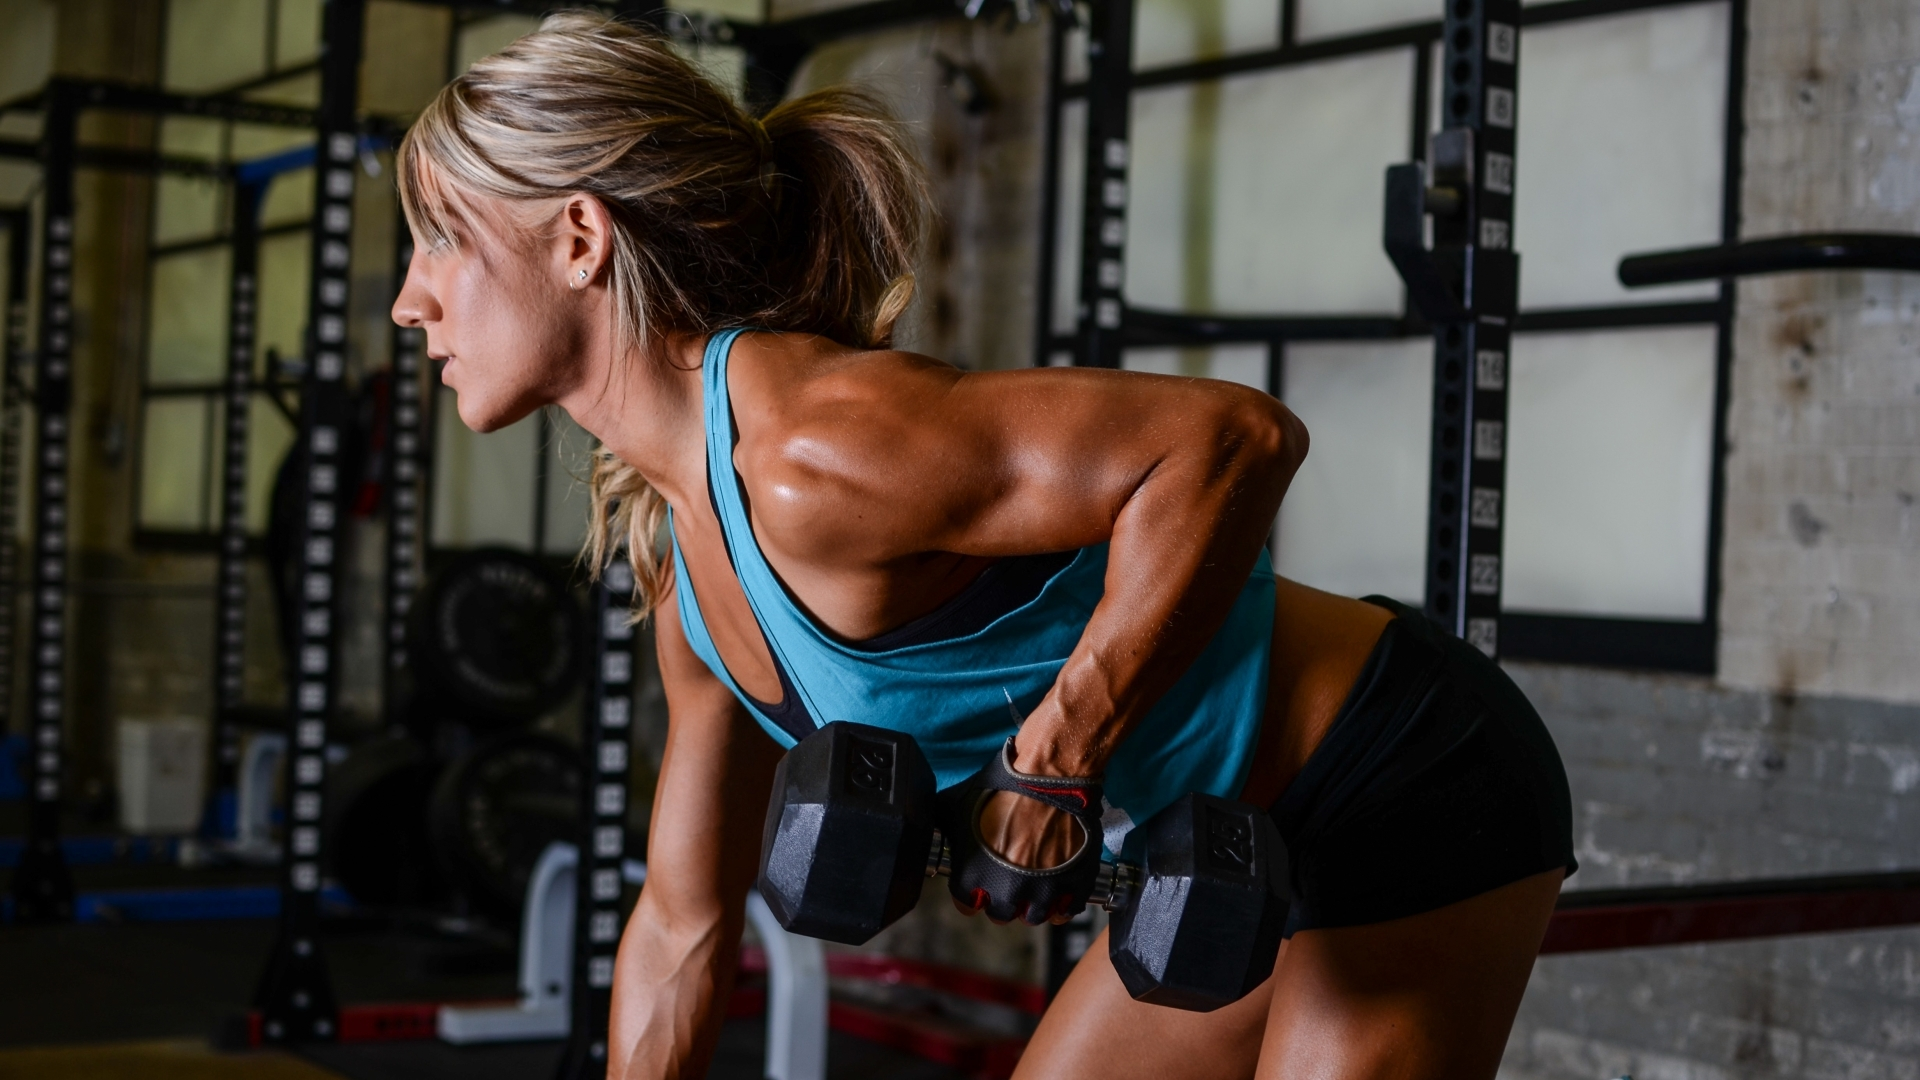 female exercises muscles gym training bodybuilding wallpapers 1920x1080